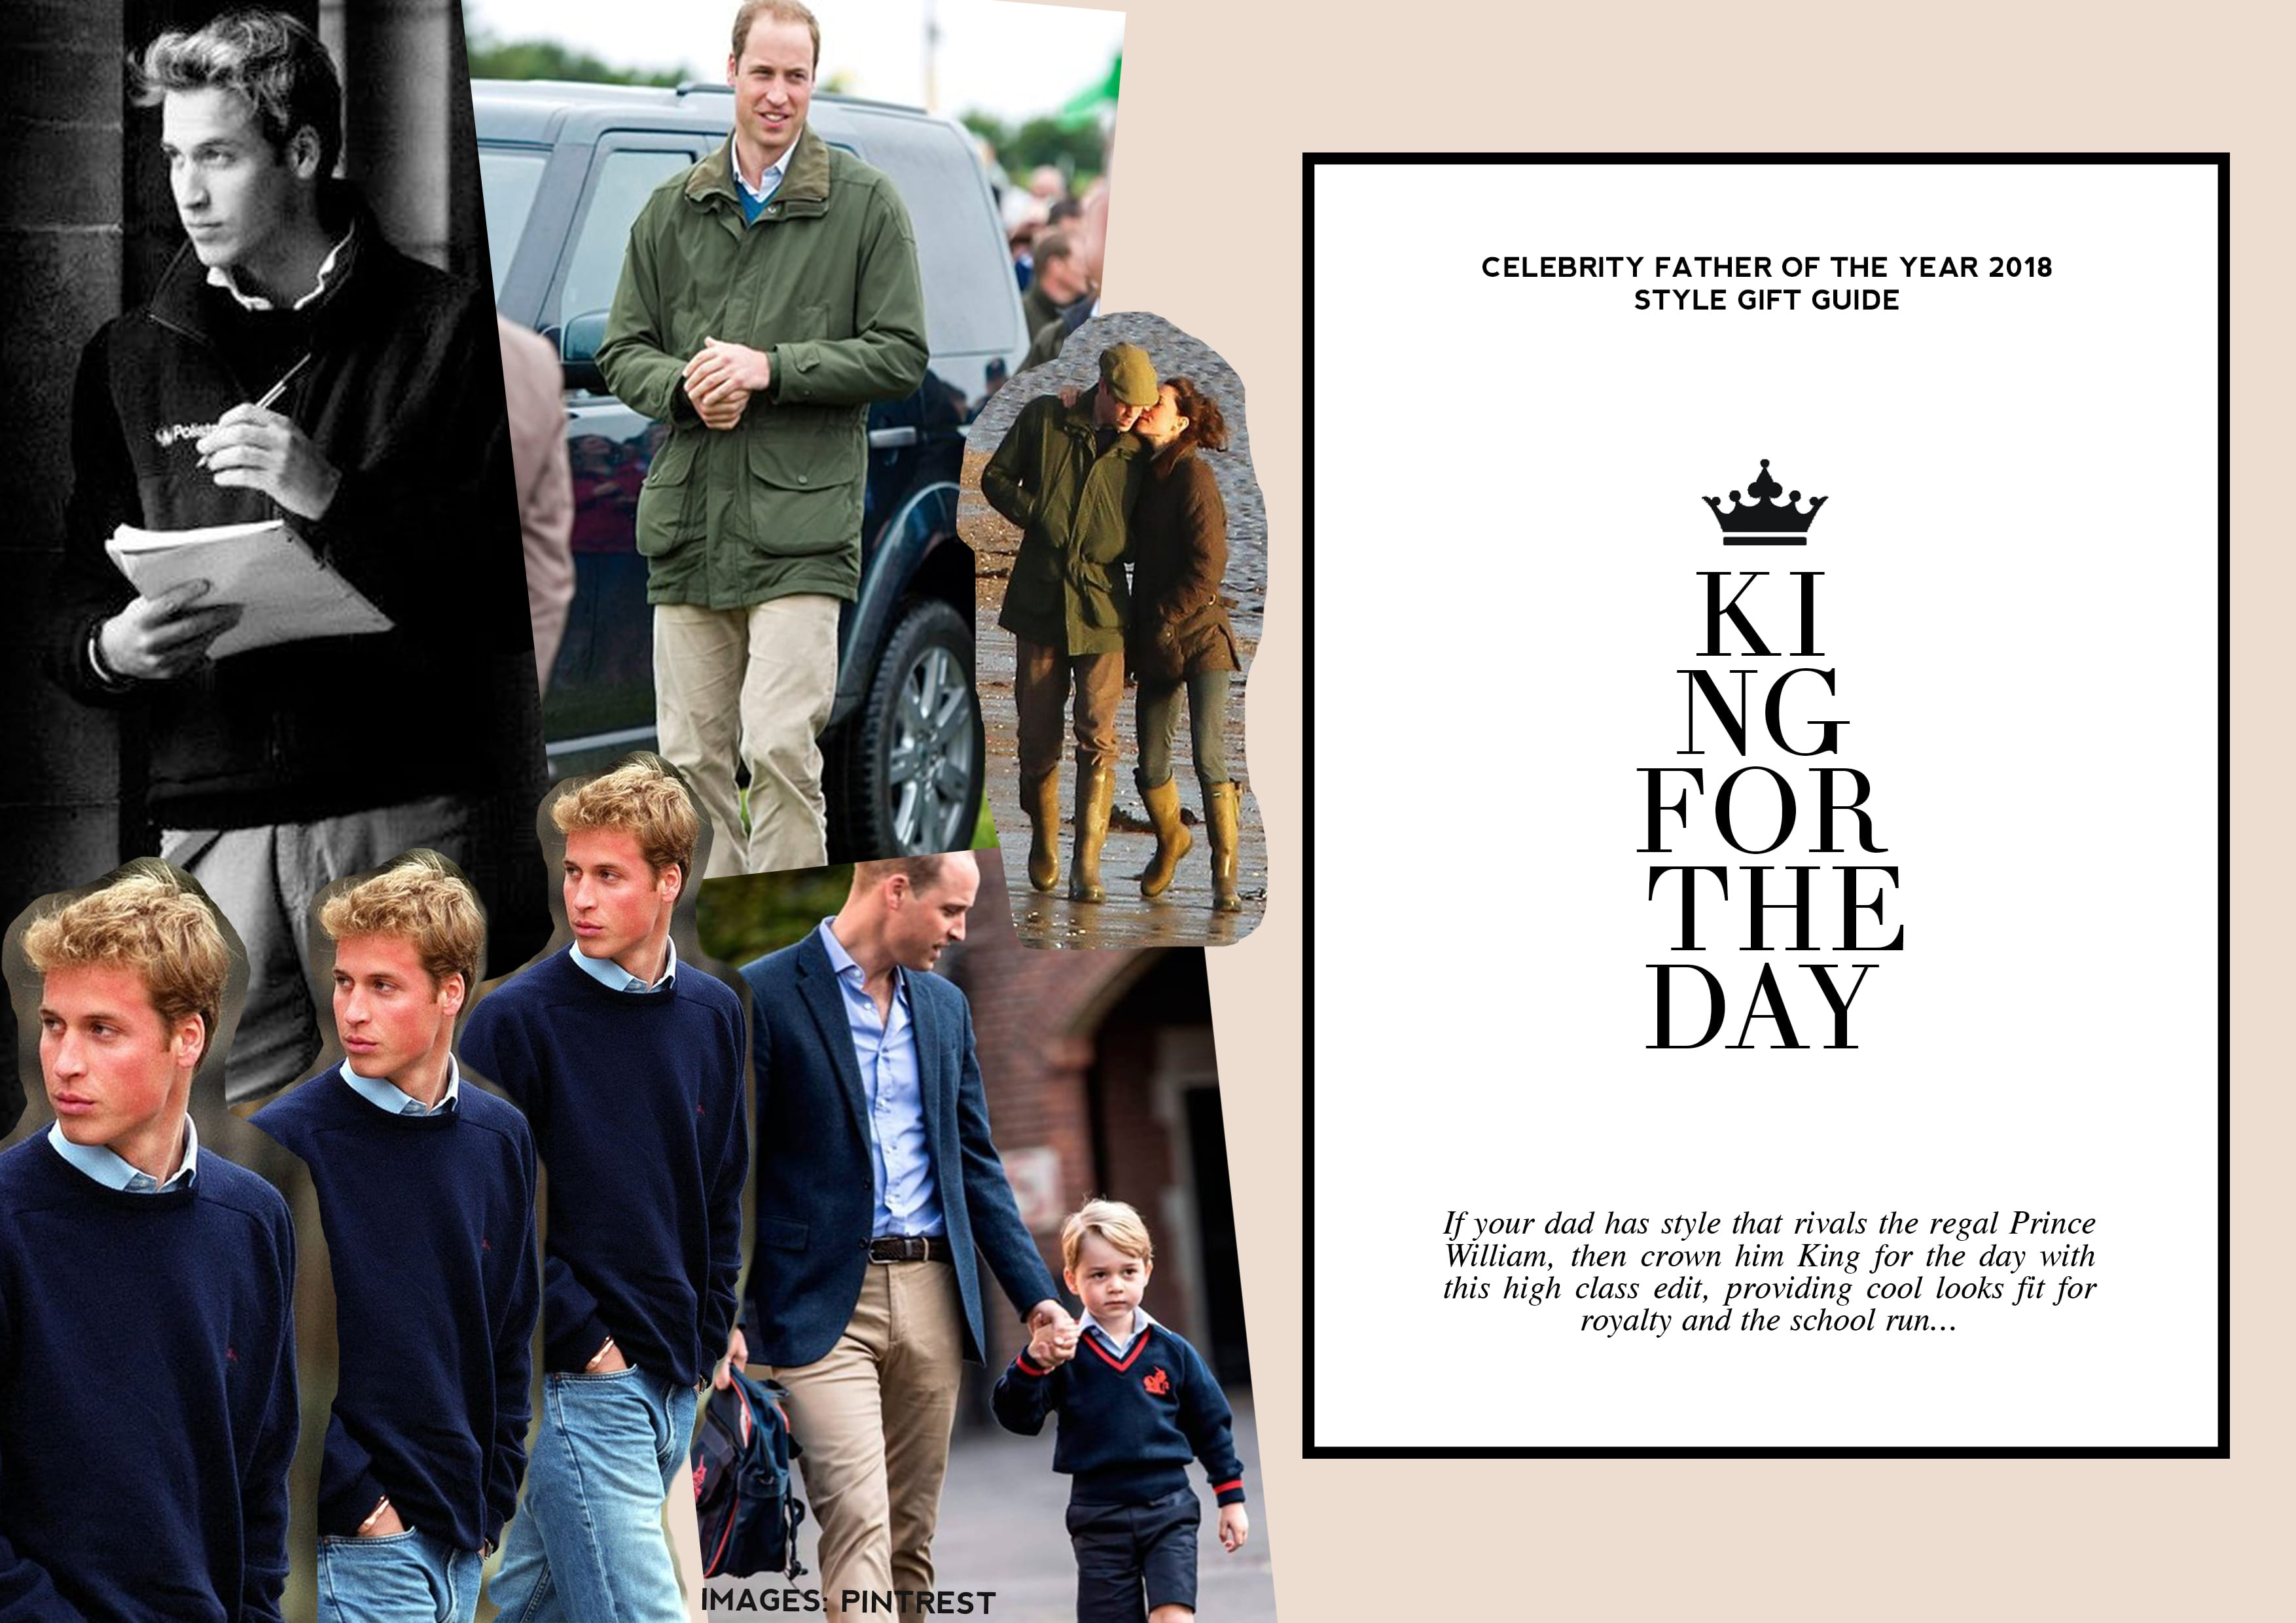 Father's Day 2018, gift guide, style guide, mens fashion, Prince William, Royals, Celebrity, Father of the Year, king for the day, Prince George, Kate Middleton